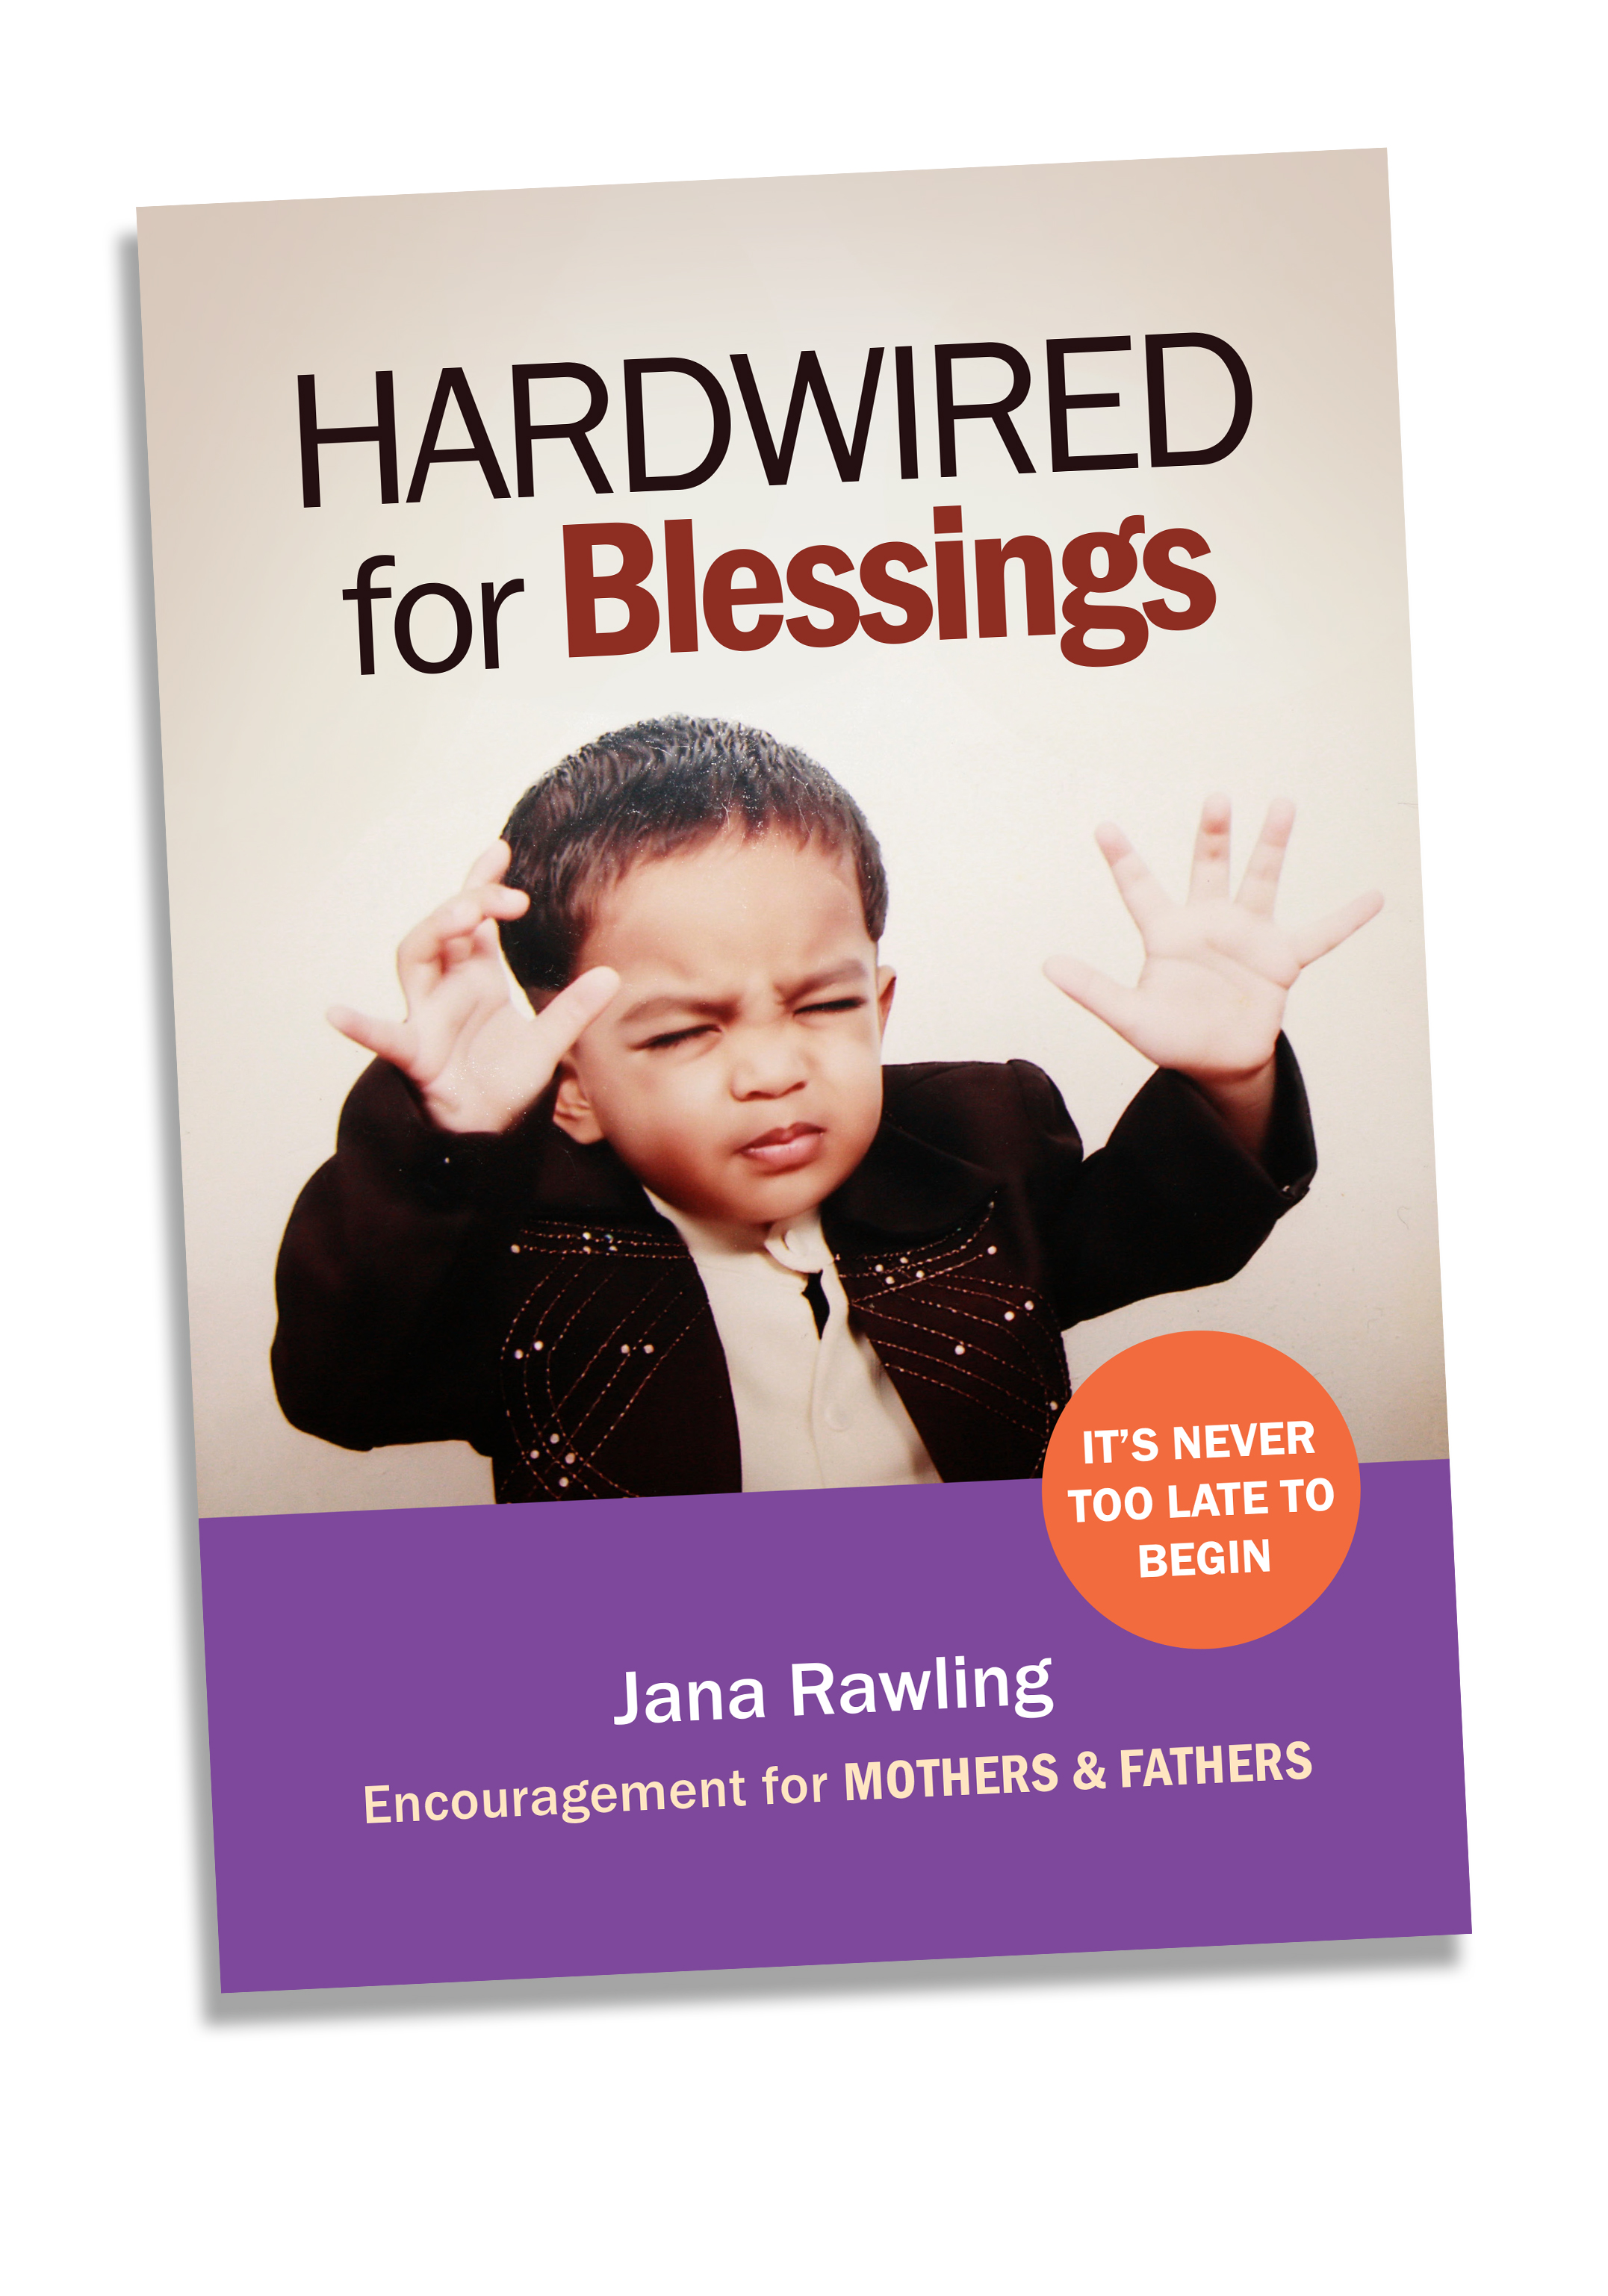 HardwiredforBlessings_Cover_2ndEd_r1